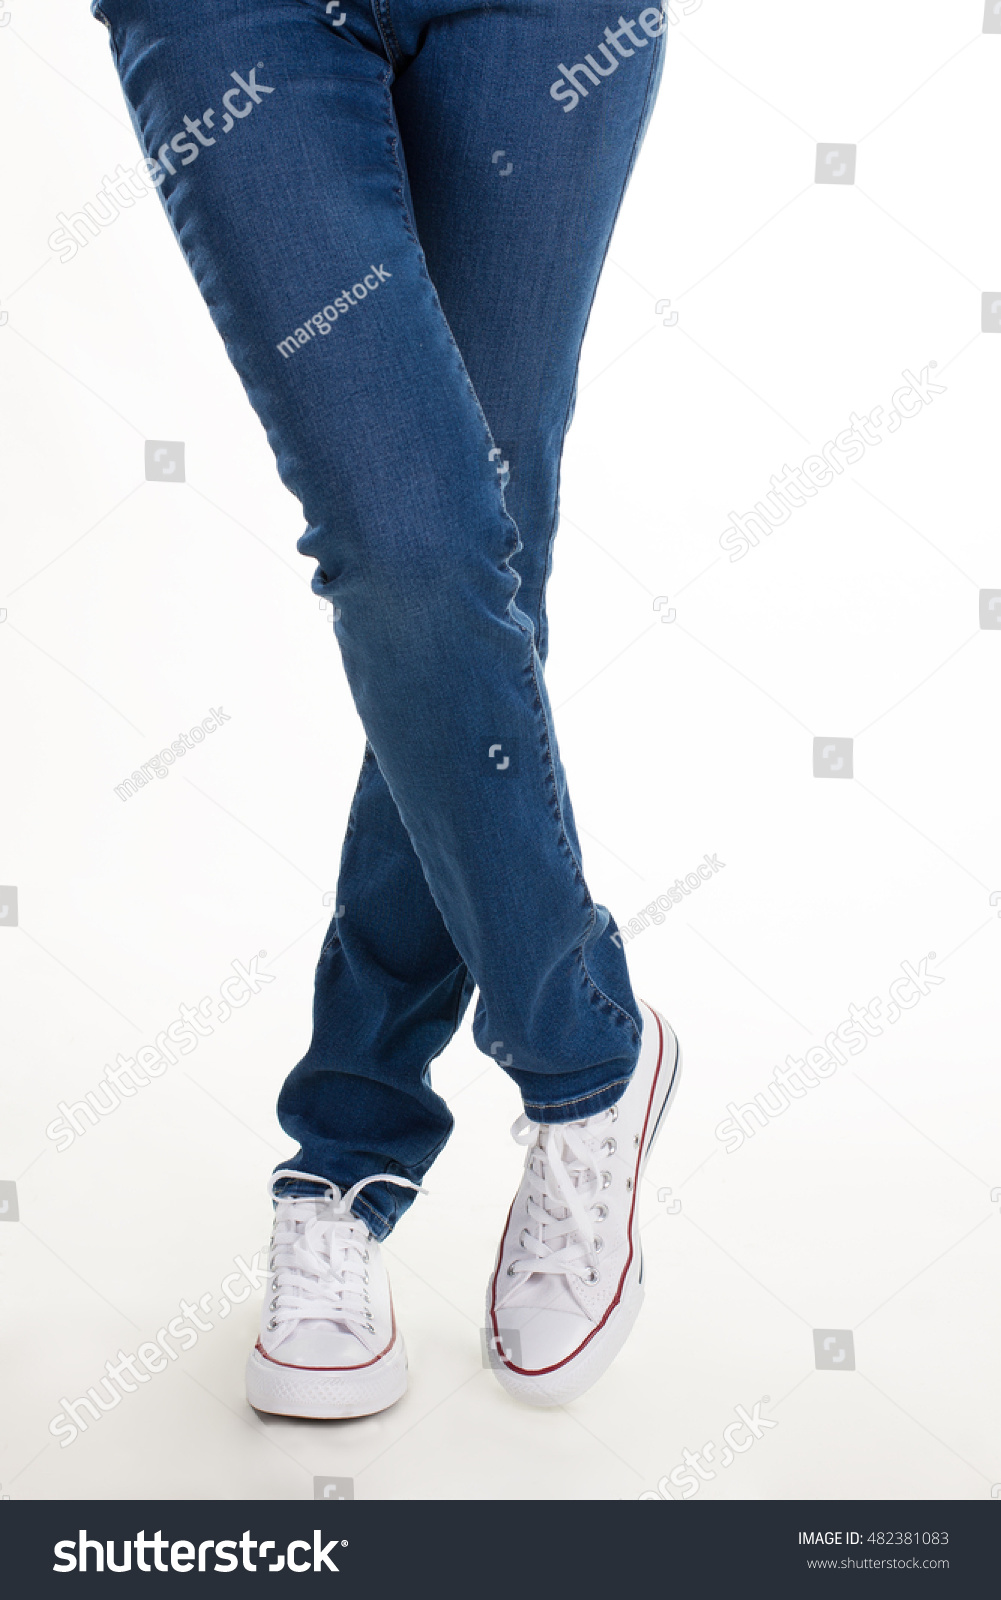 Womens Legs Jeans White Sneakers Casual Stock Photo Edit Now